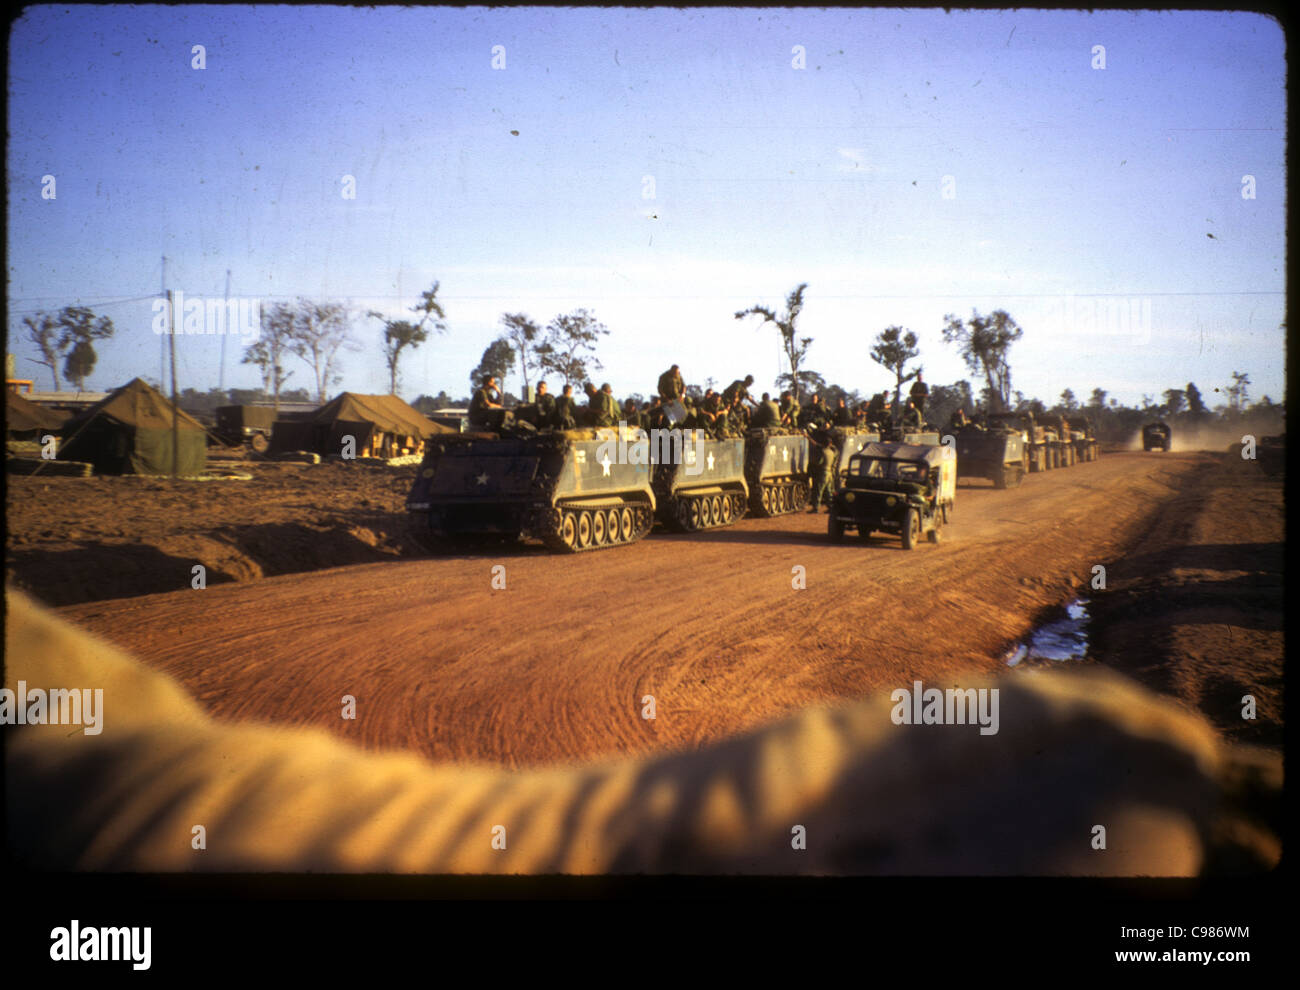 9th Infantry Division arriving in Vietnam APC M113 armored personnel carrier troops soldiers on road waiting - Stock Image